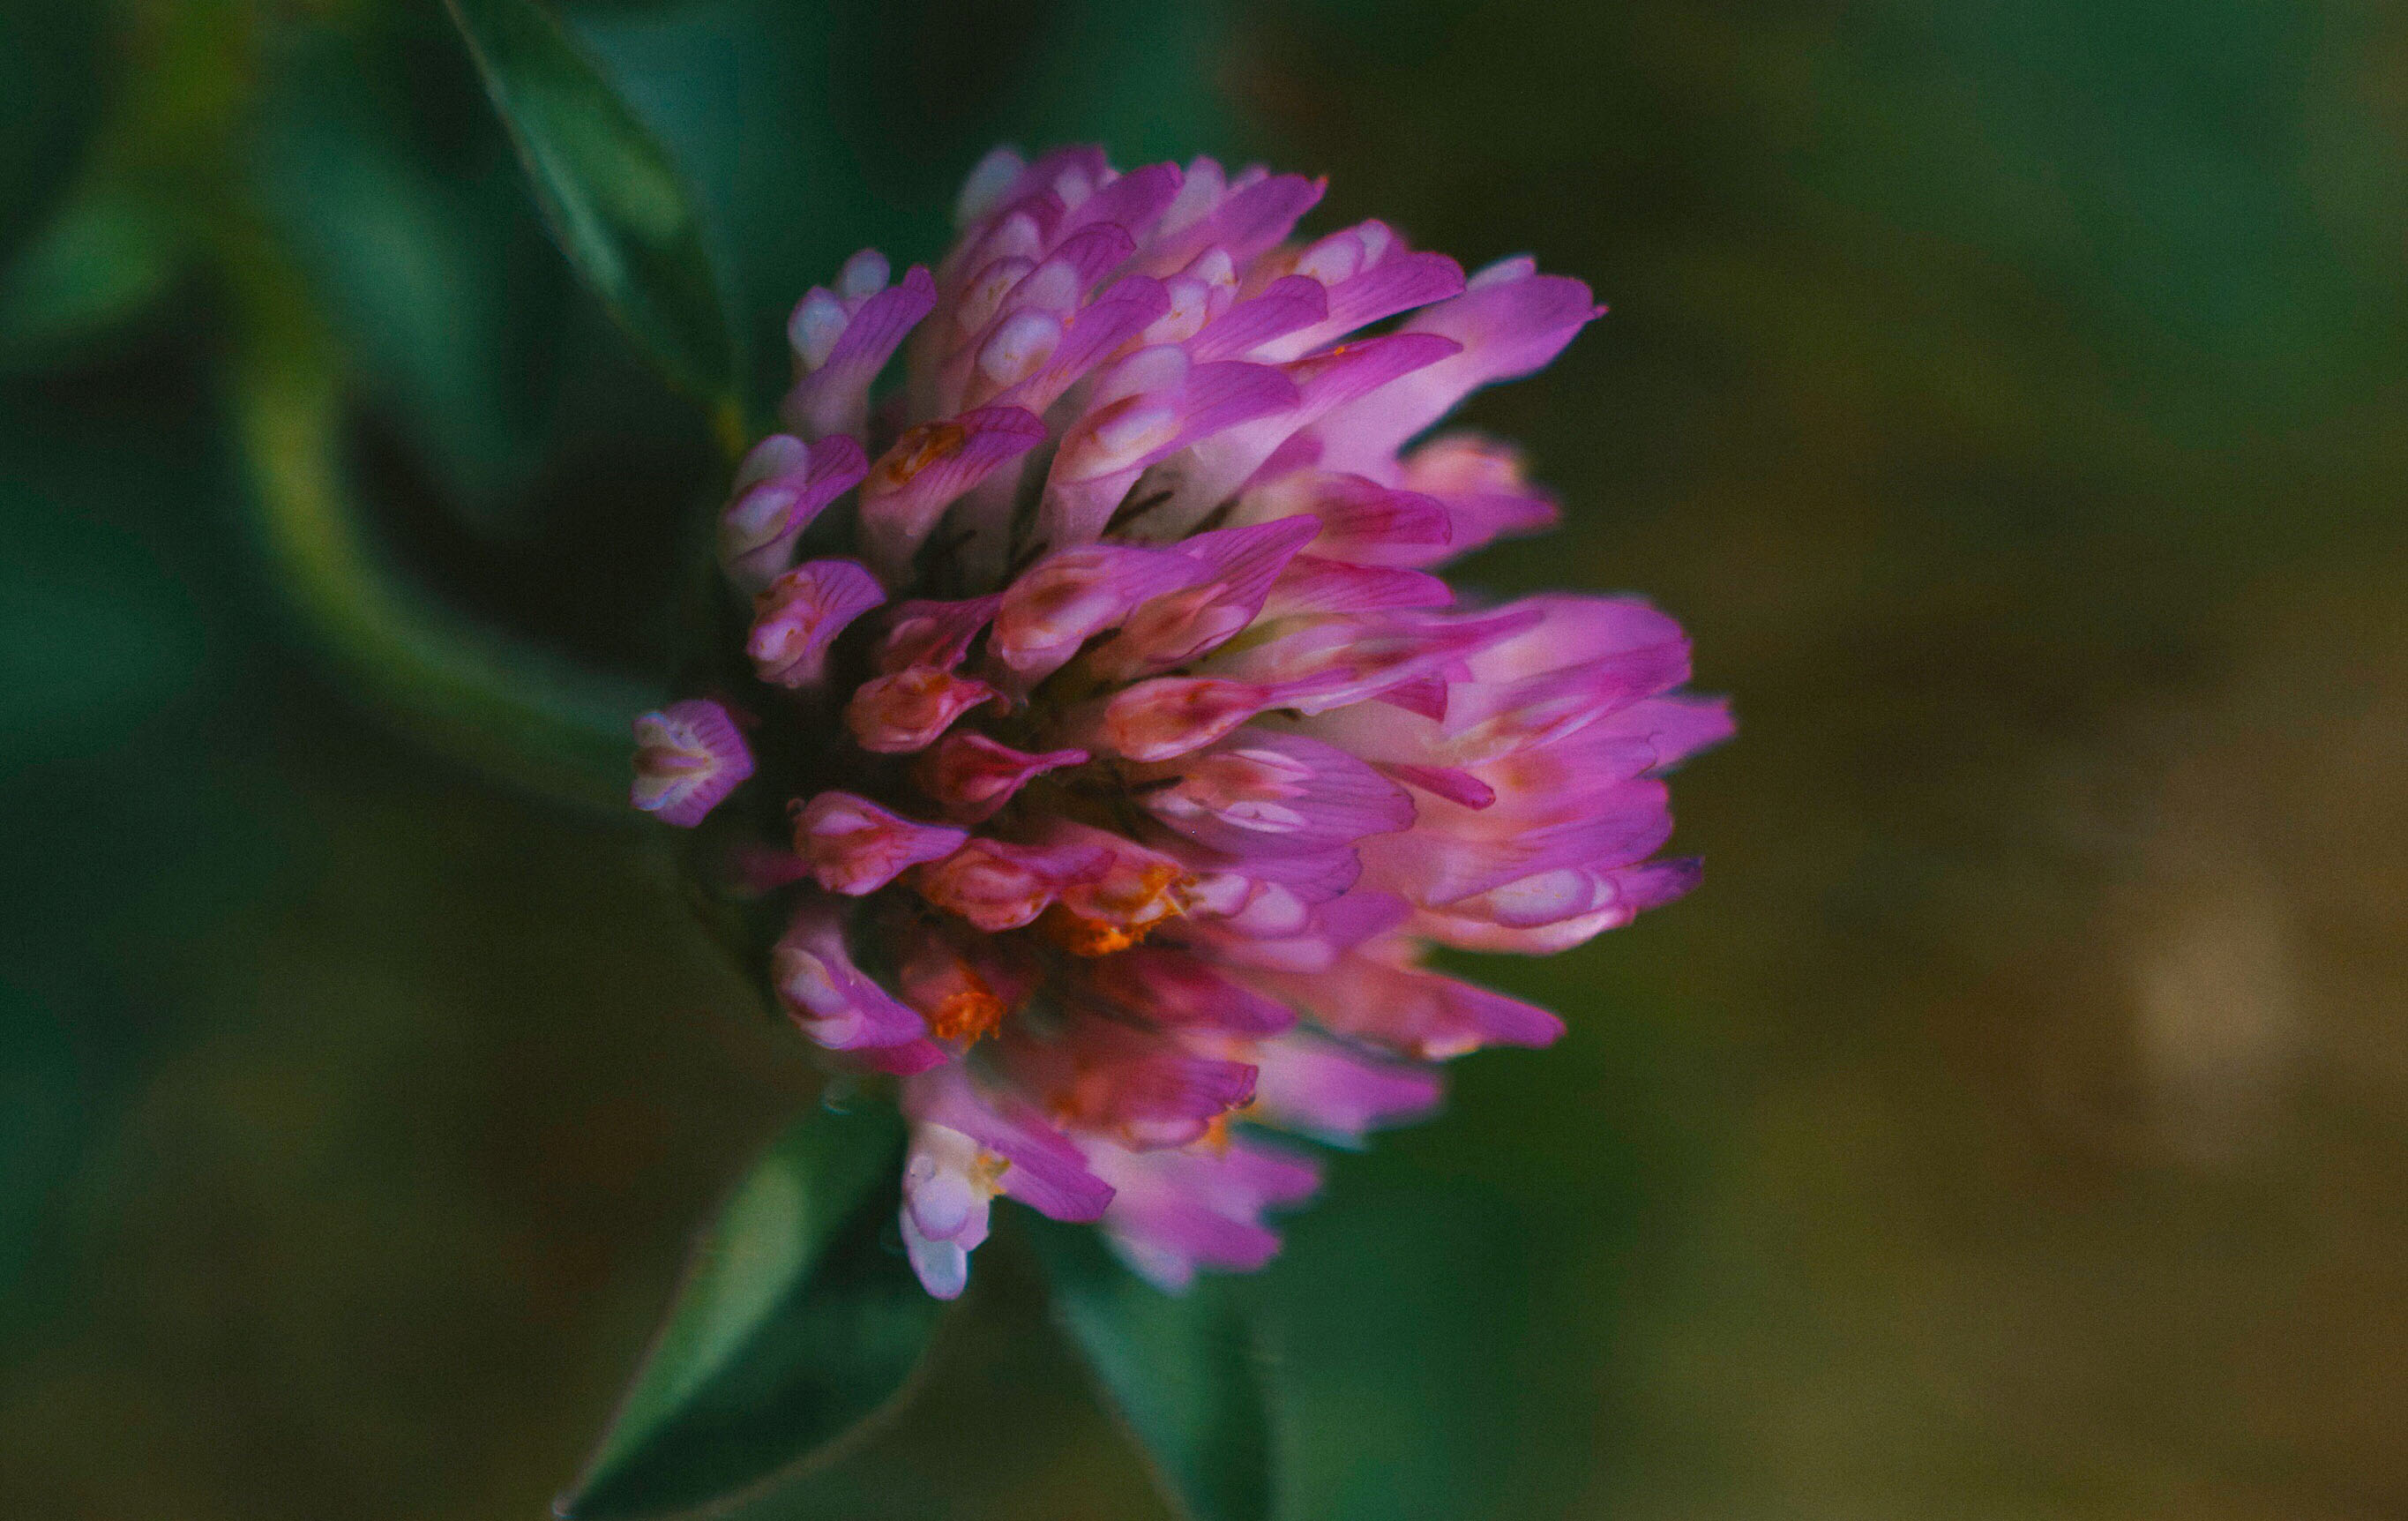 A wild red clover plant growing in a lawn.